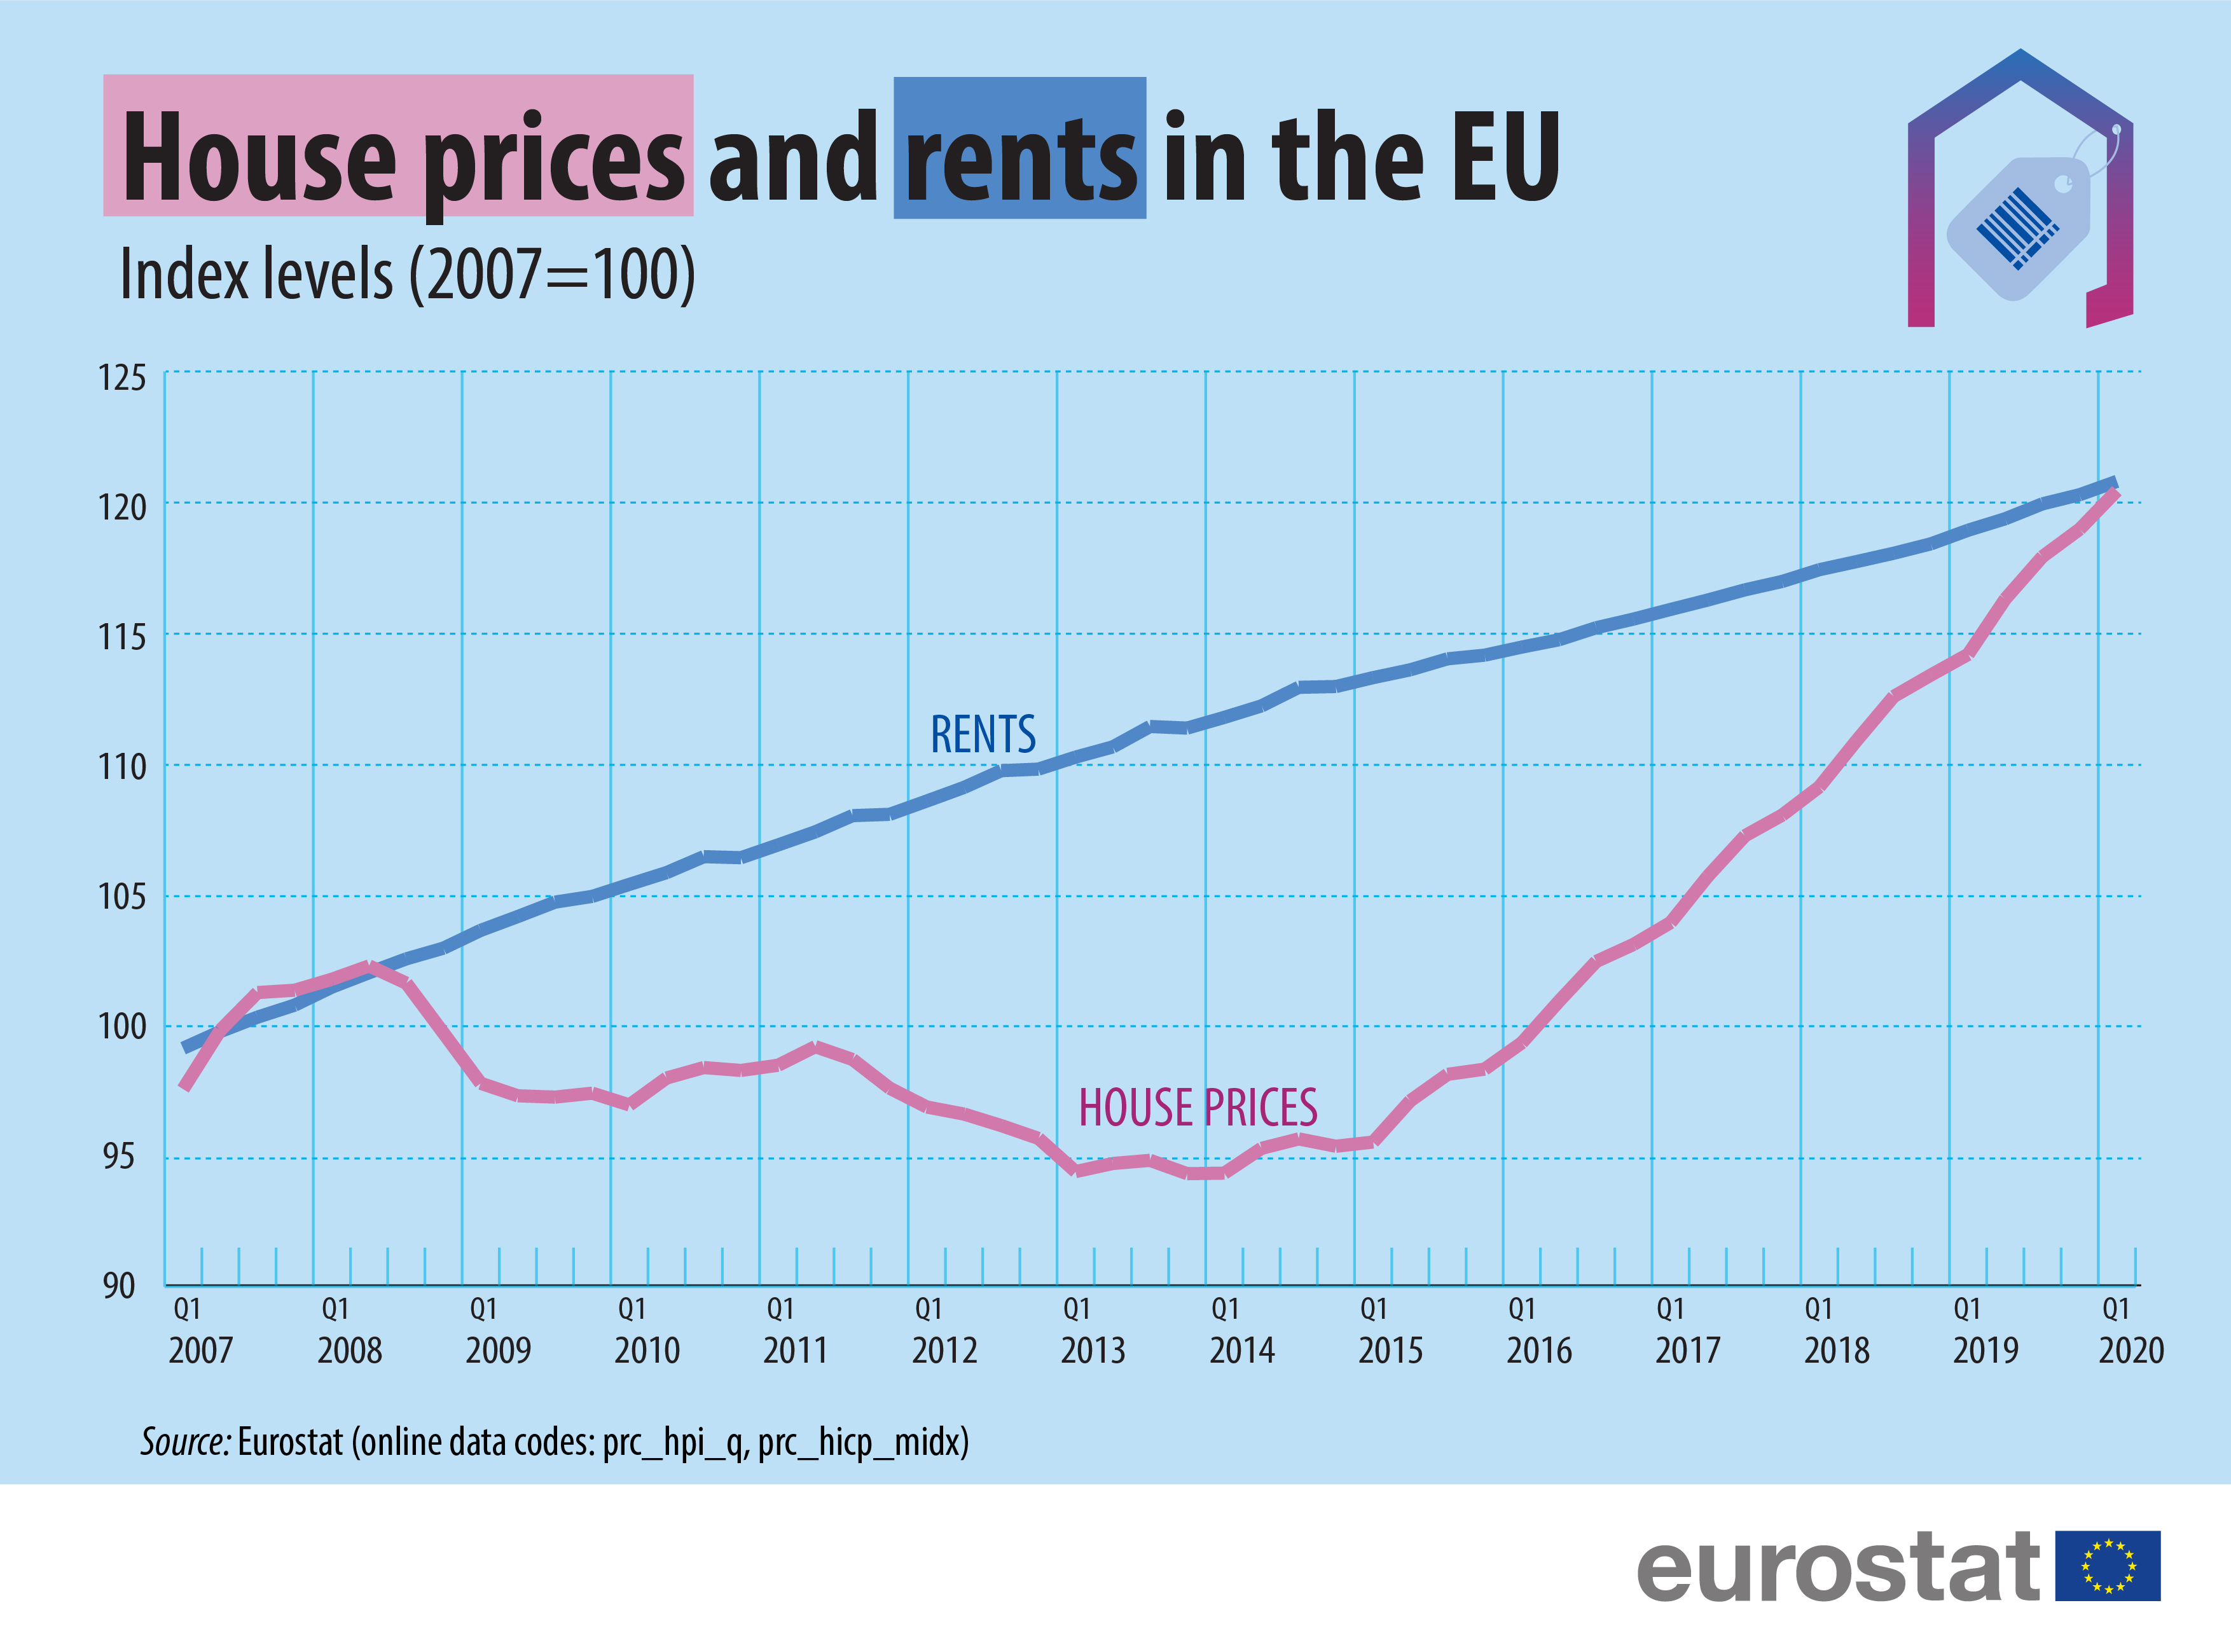 House prices and rents in the EU Index levels (2007=100)